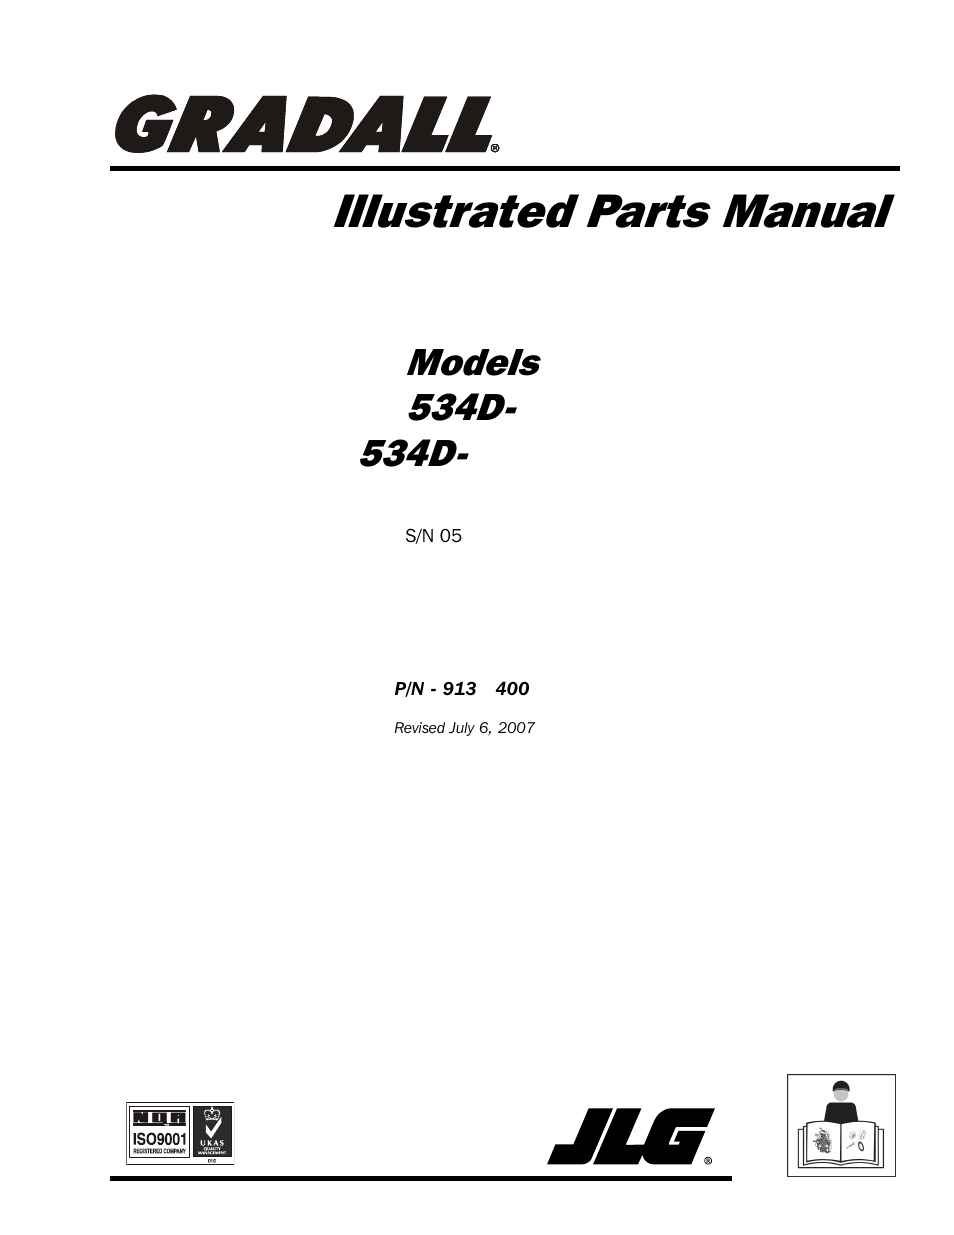 Daewoo Forklift Manuals Wiring Source Diagram For Jcb Forklifts Baker Transmission Together With Polaris Parts In Addition Dealers Besides 210s